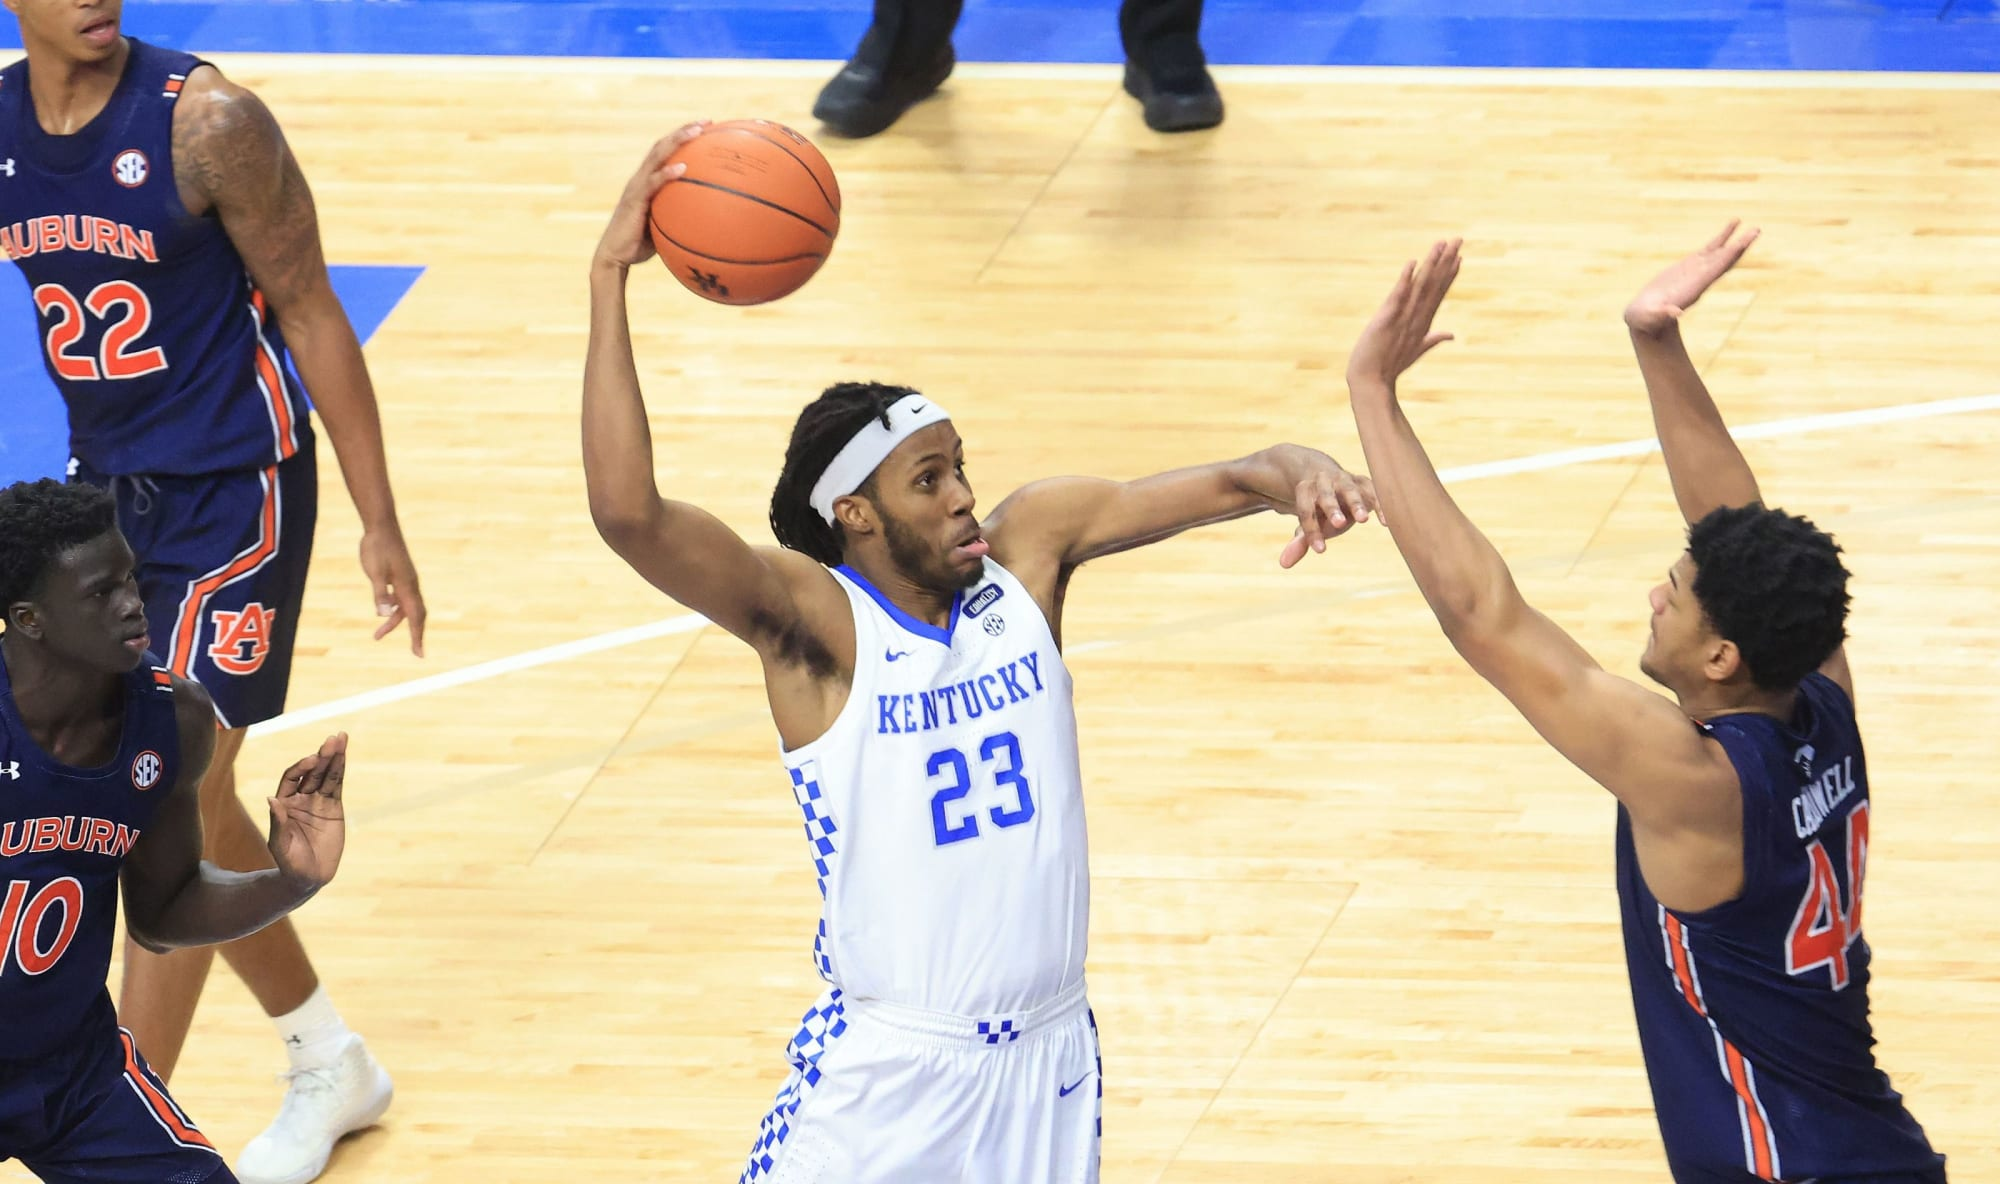 Kentucky center Isaiah Jackson scouting report: Should Raptors, Thunder be interested?